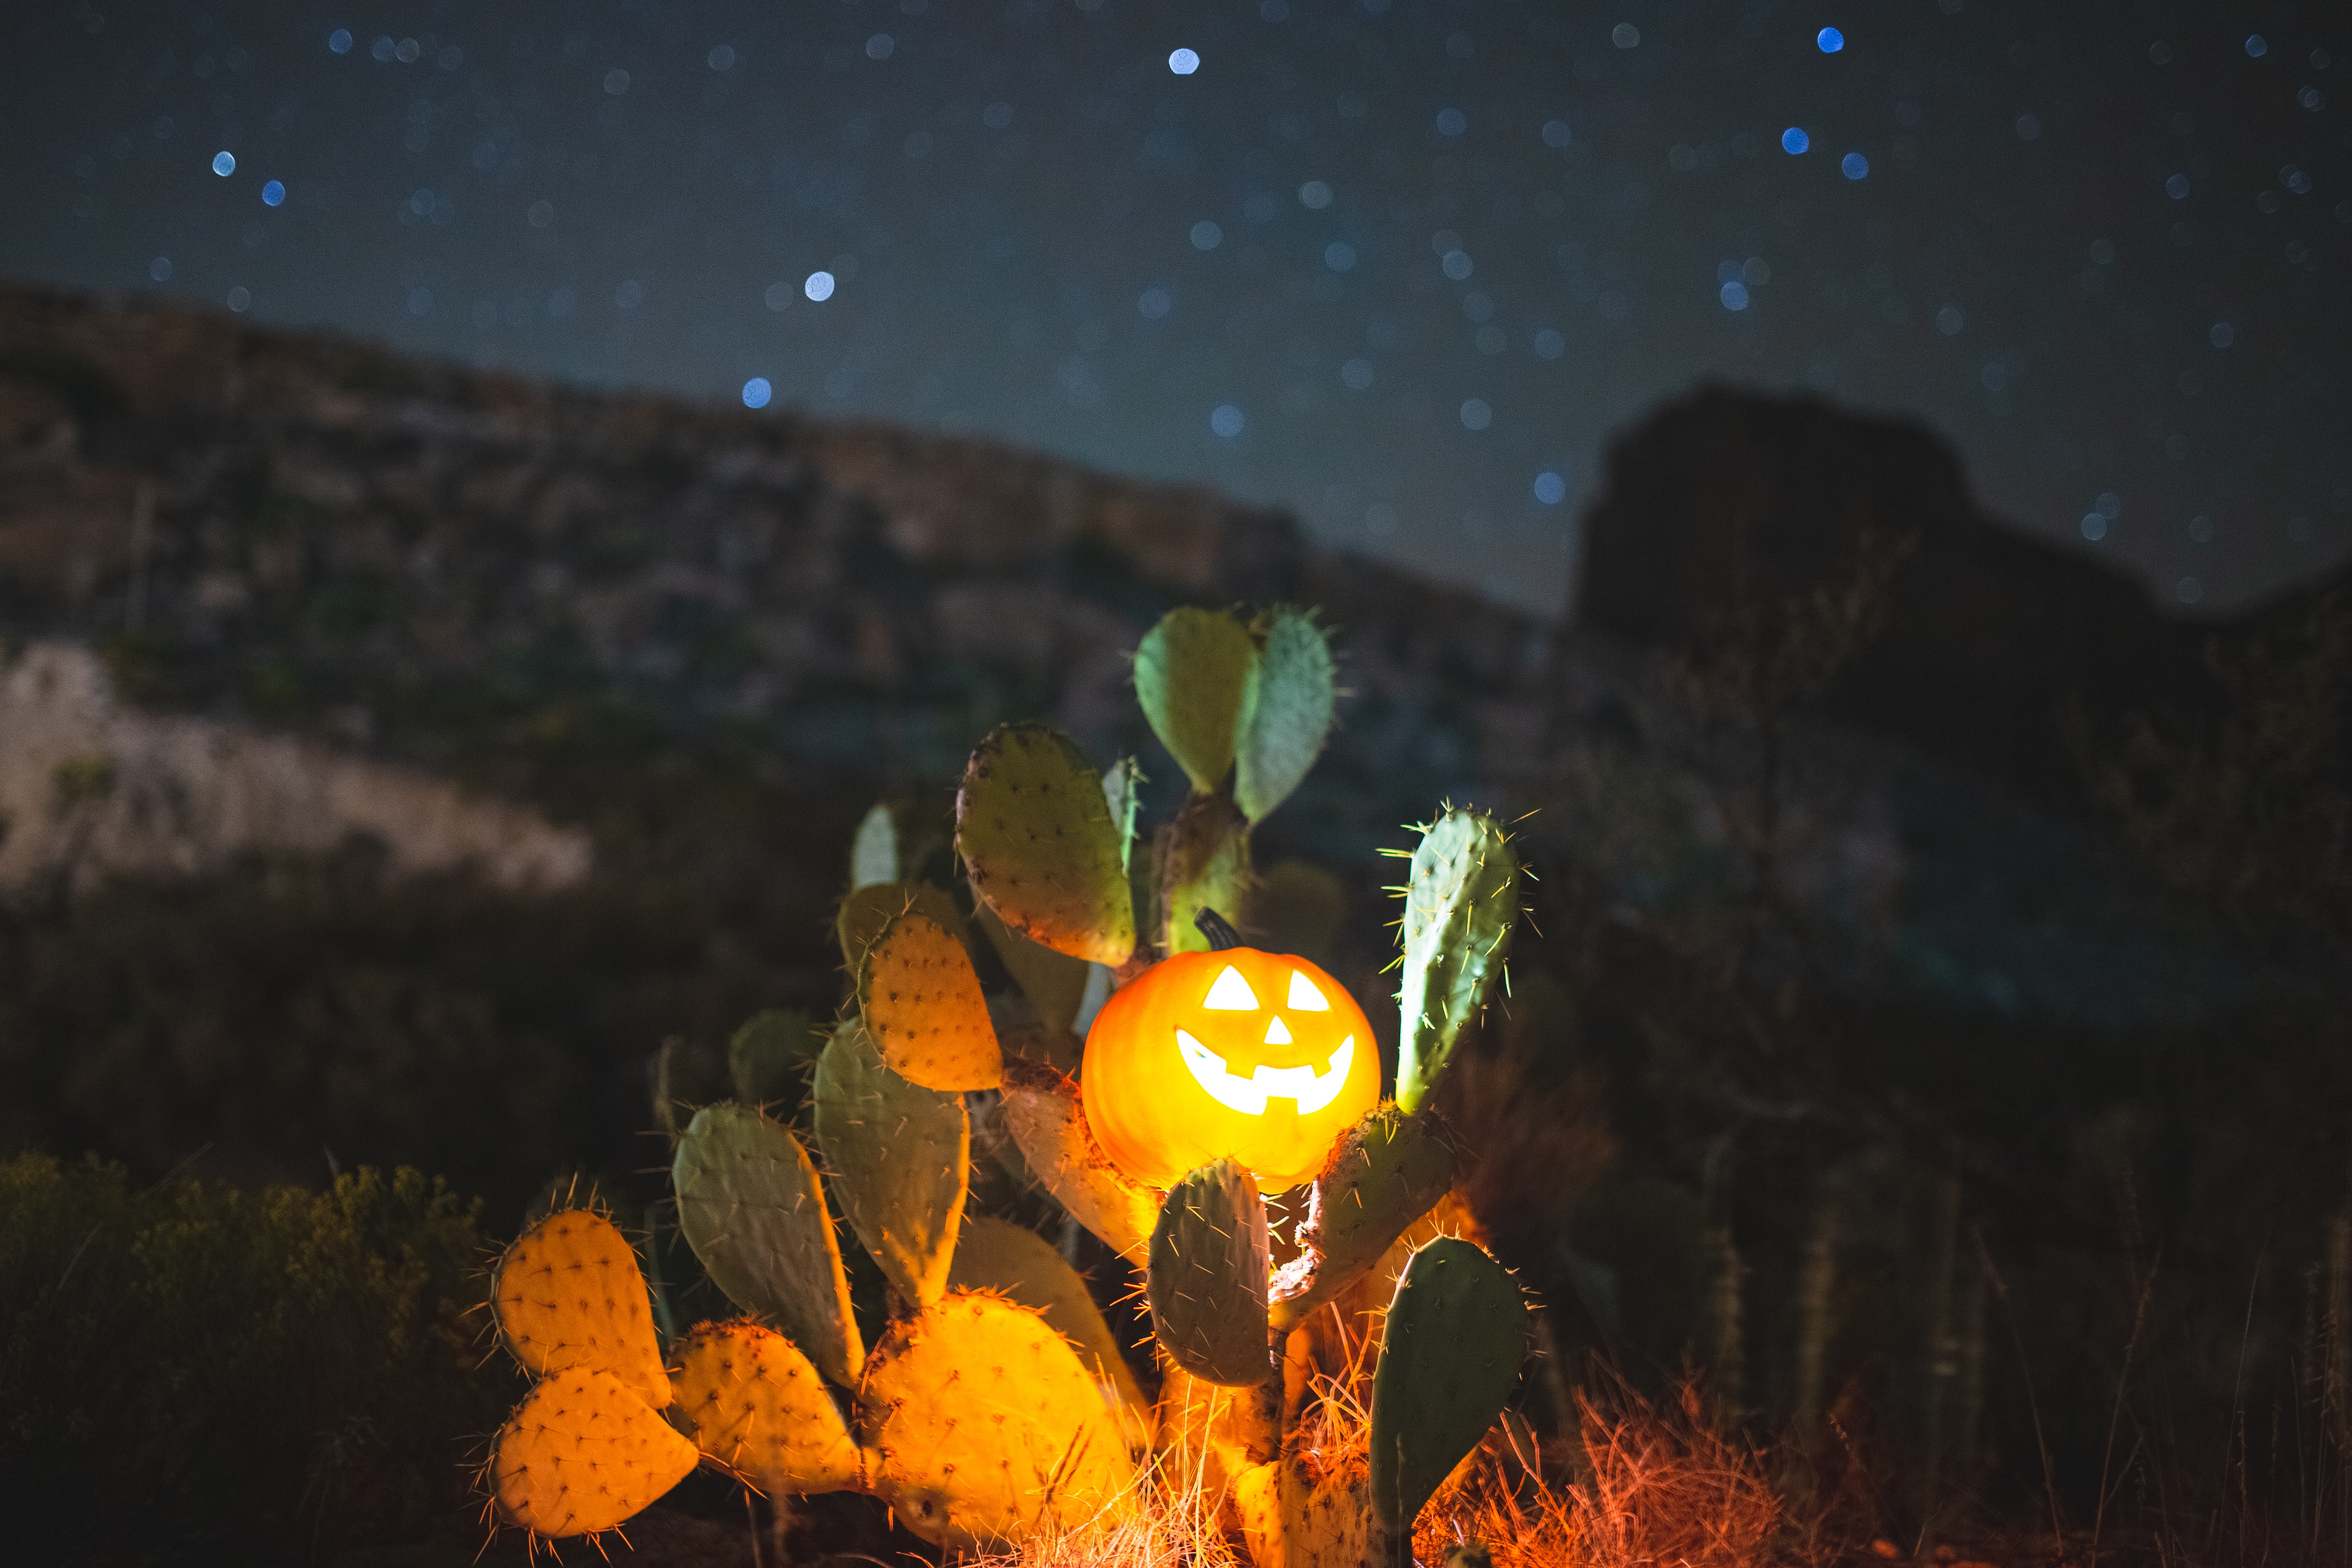 147825 download wallpaper Cactuses, Halloween, Night, Pumpkin, Miscellanea, Miscellaneous, Glow screensavers and pictures for free